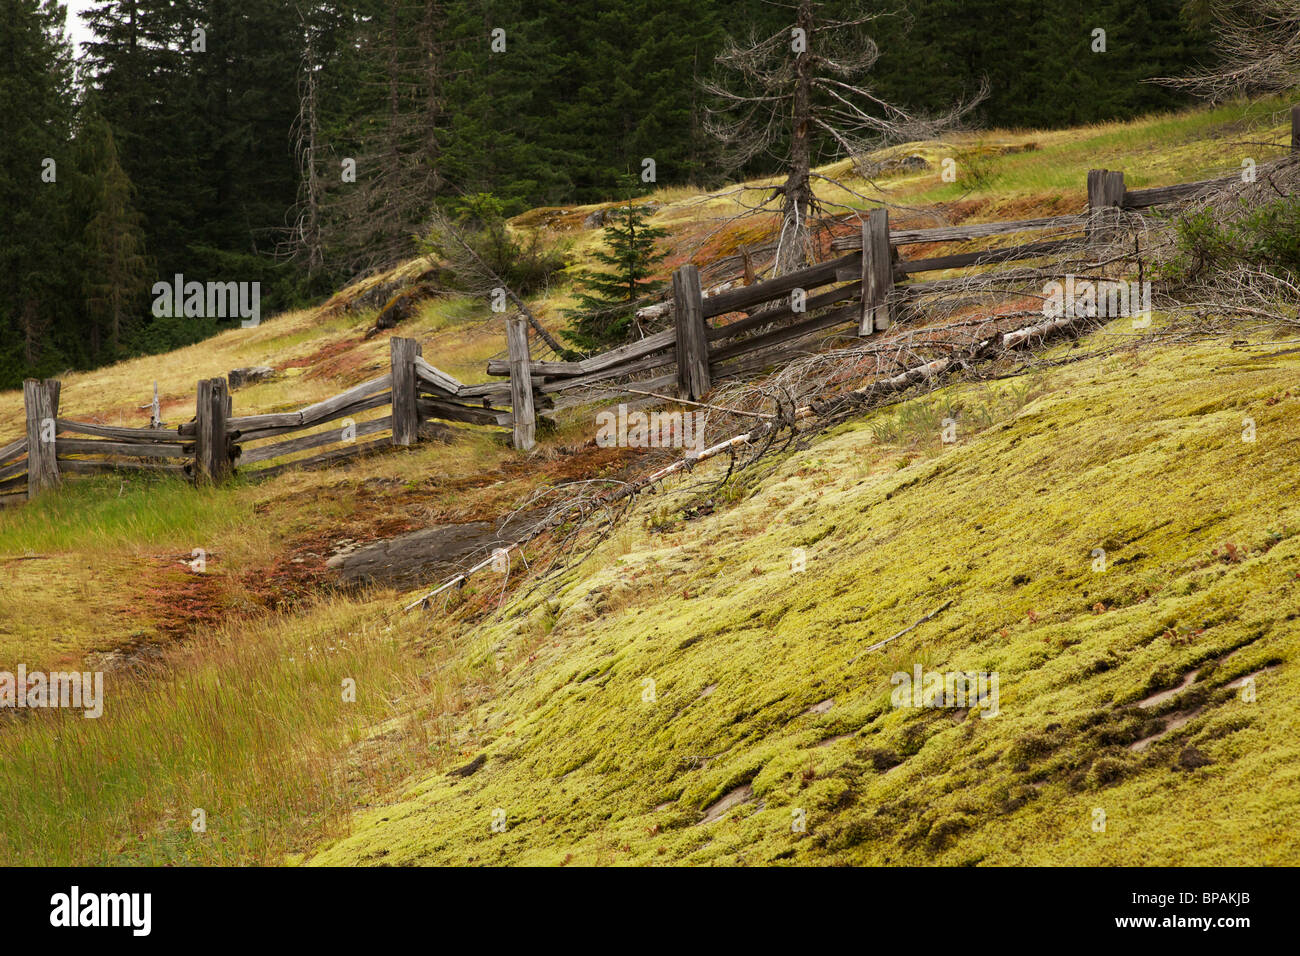 Split rail fence and moss covered rock. Box Canyon area. Mt Rainier National Park, Washington. - Stock Image